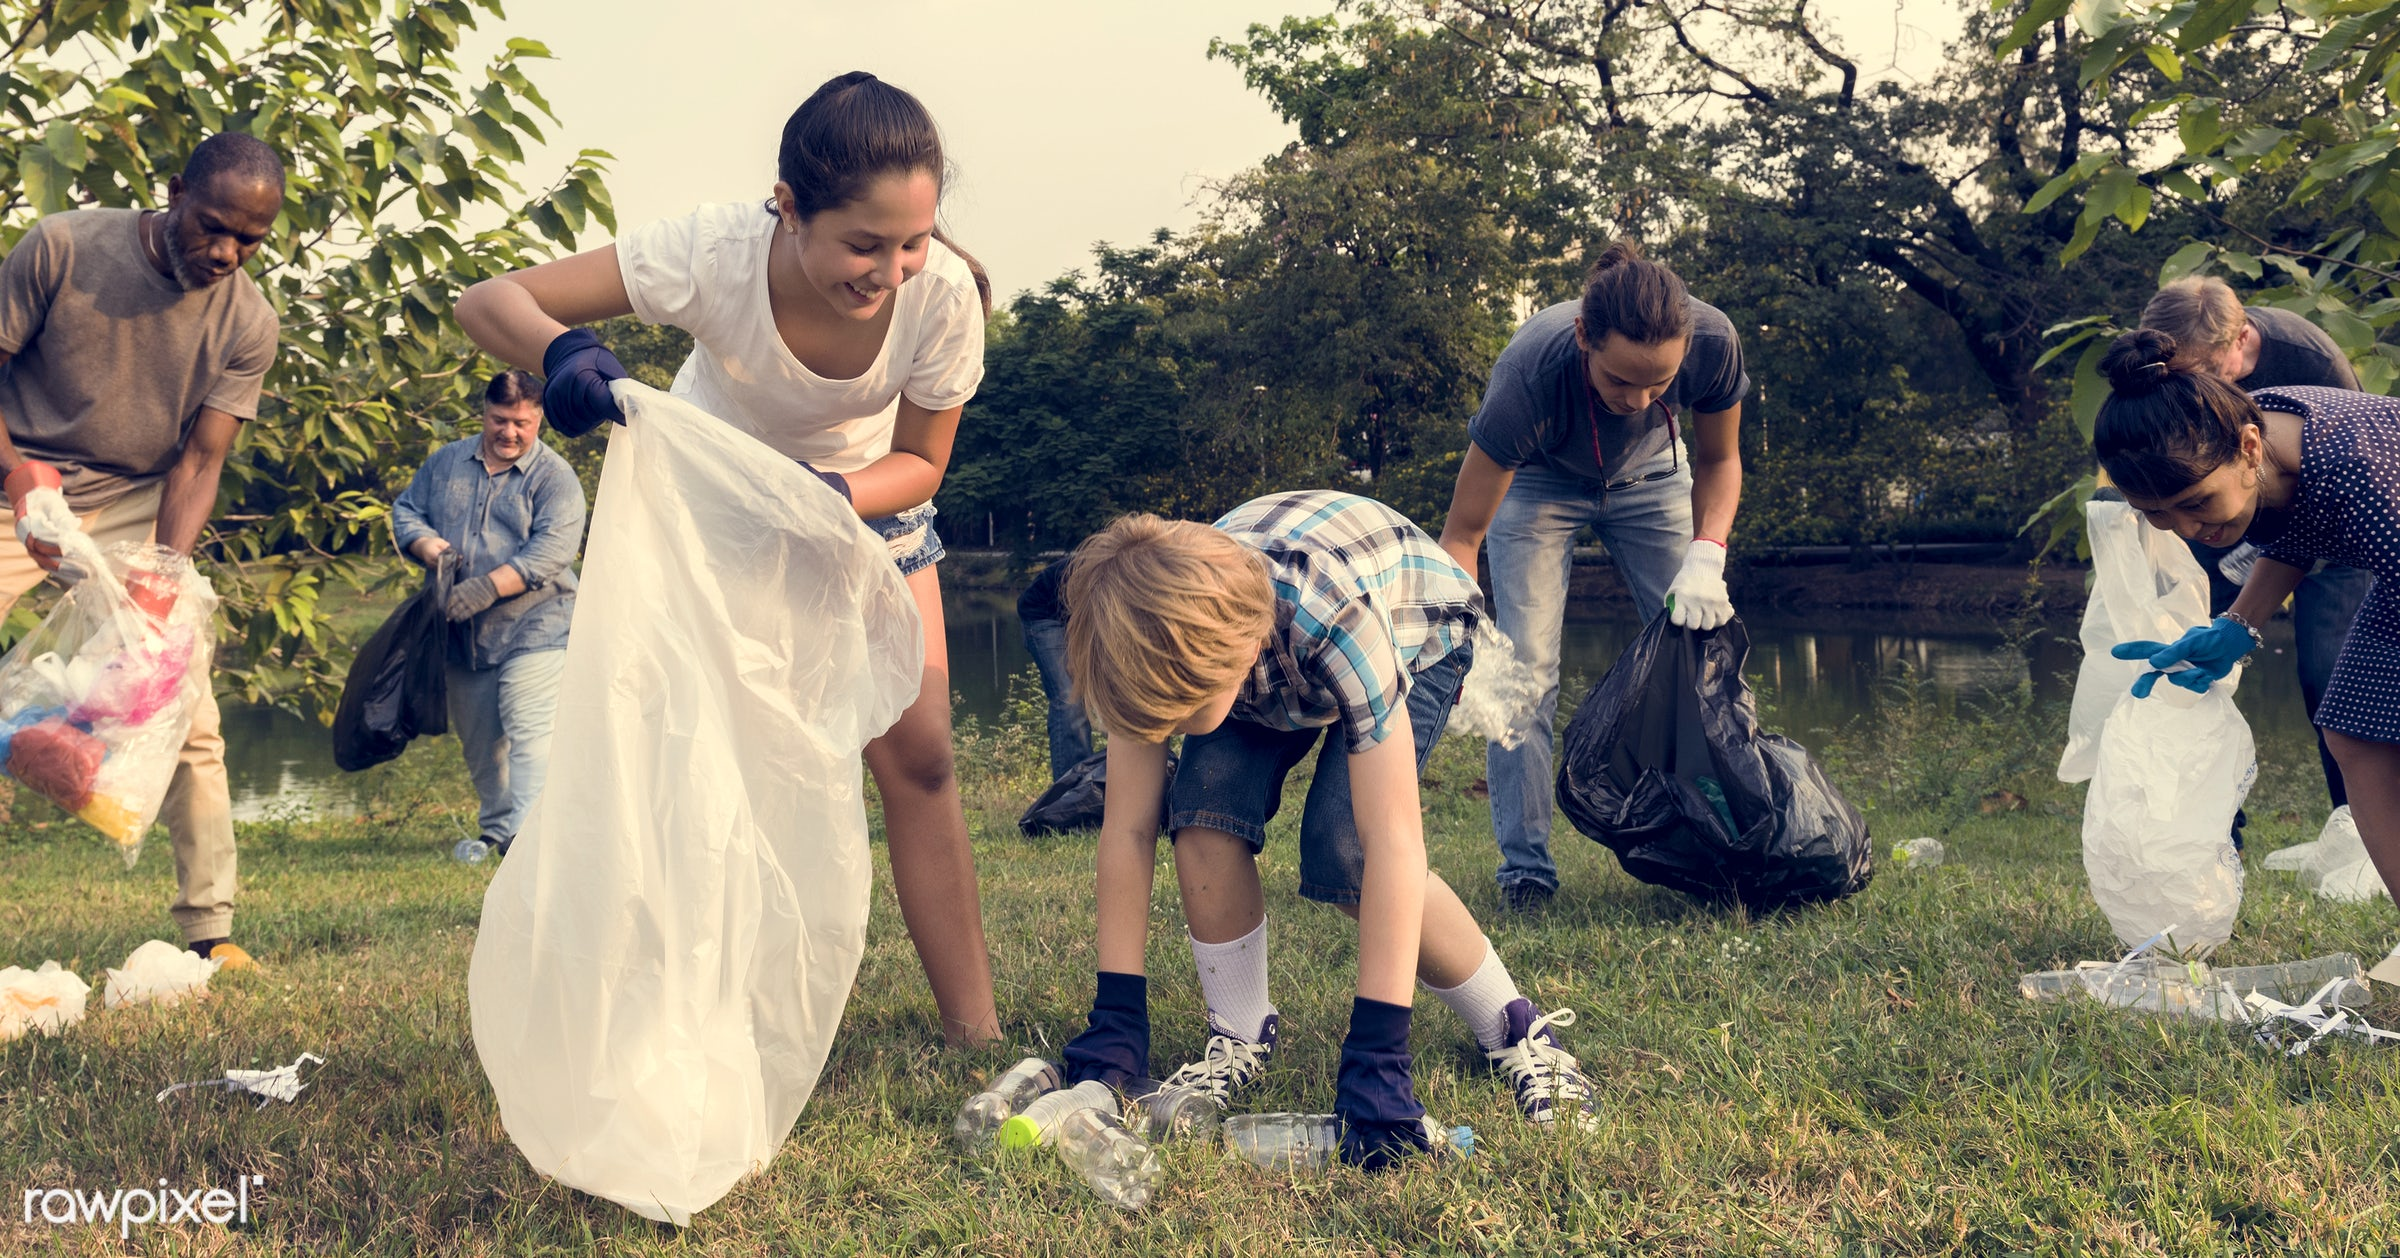 person, diverse, charity, garbage, people, together, kid, friends, nature, social, family, woman, lifestyle, care, voluntary...